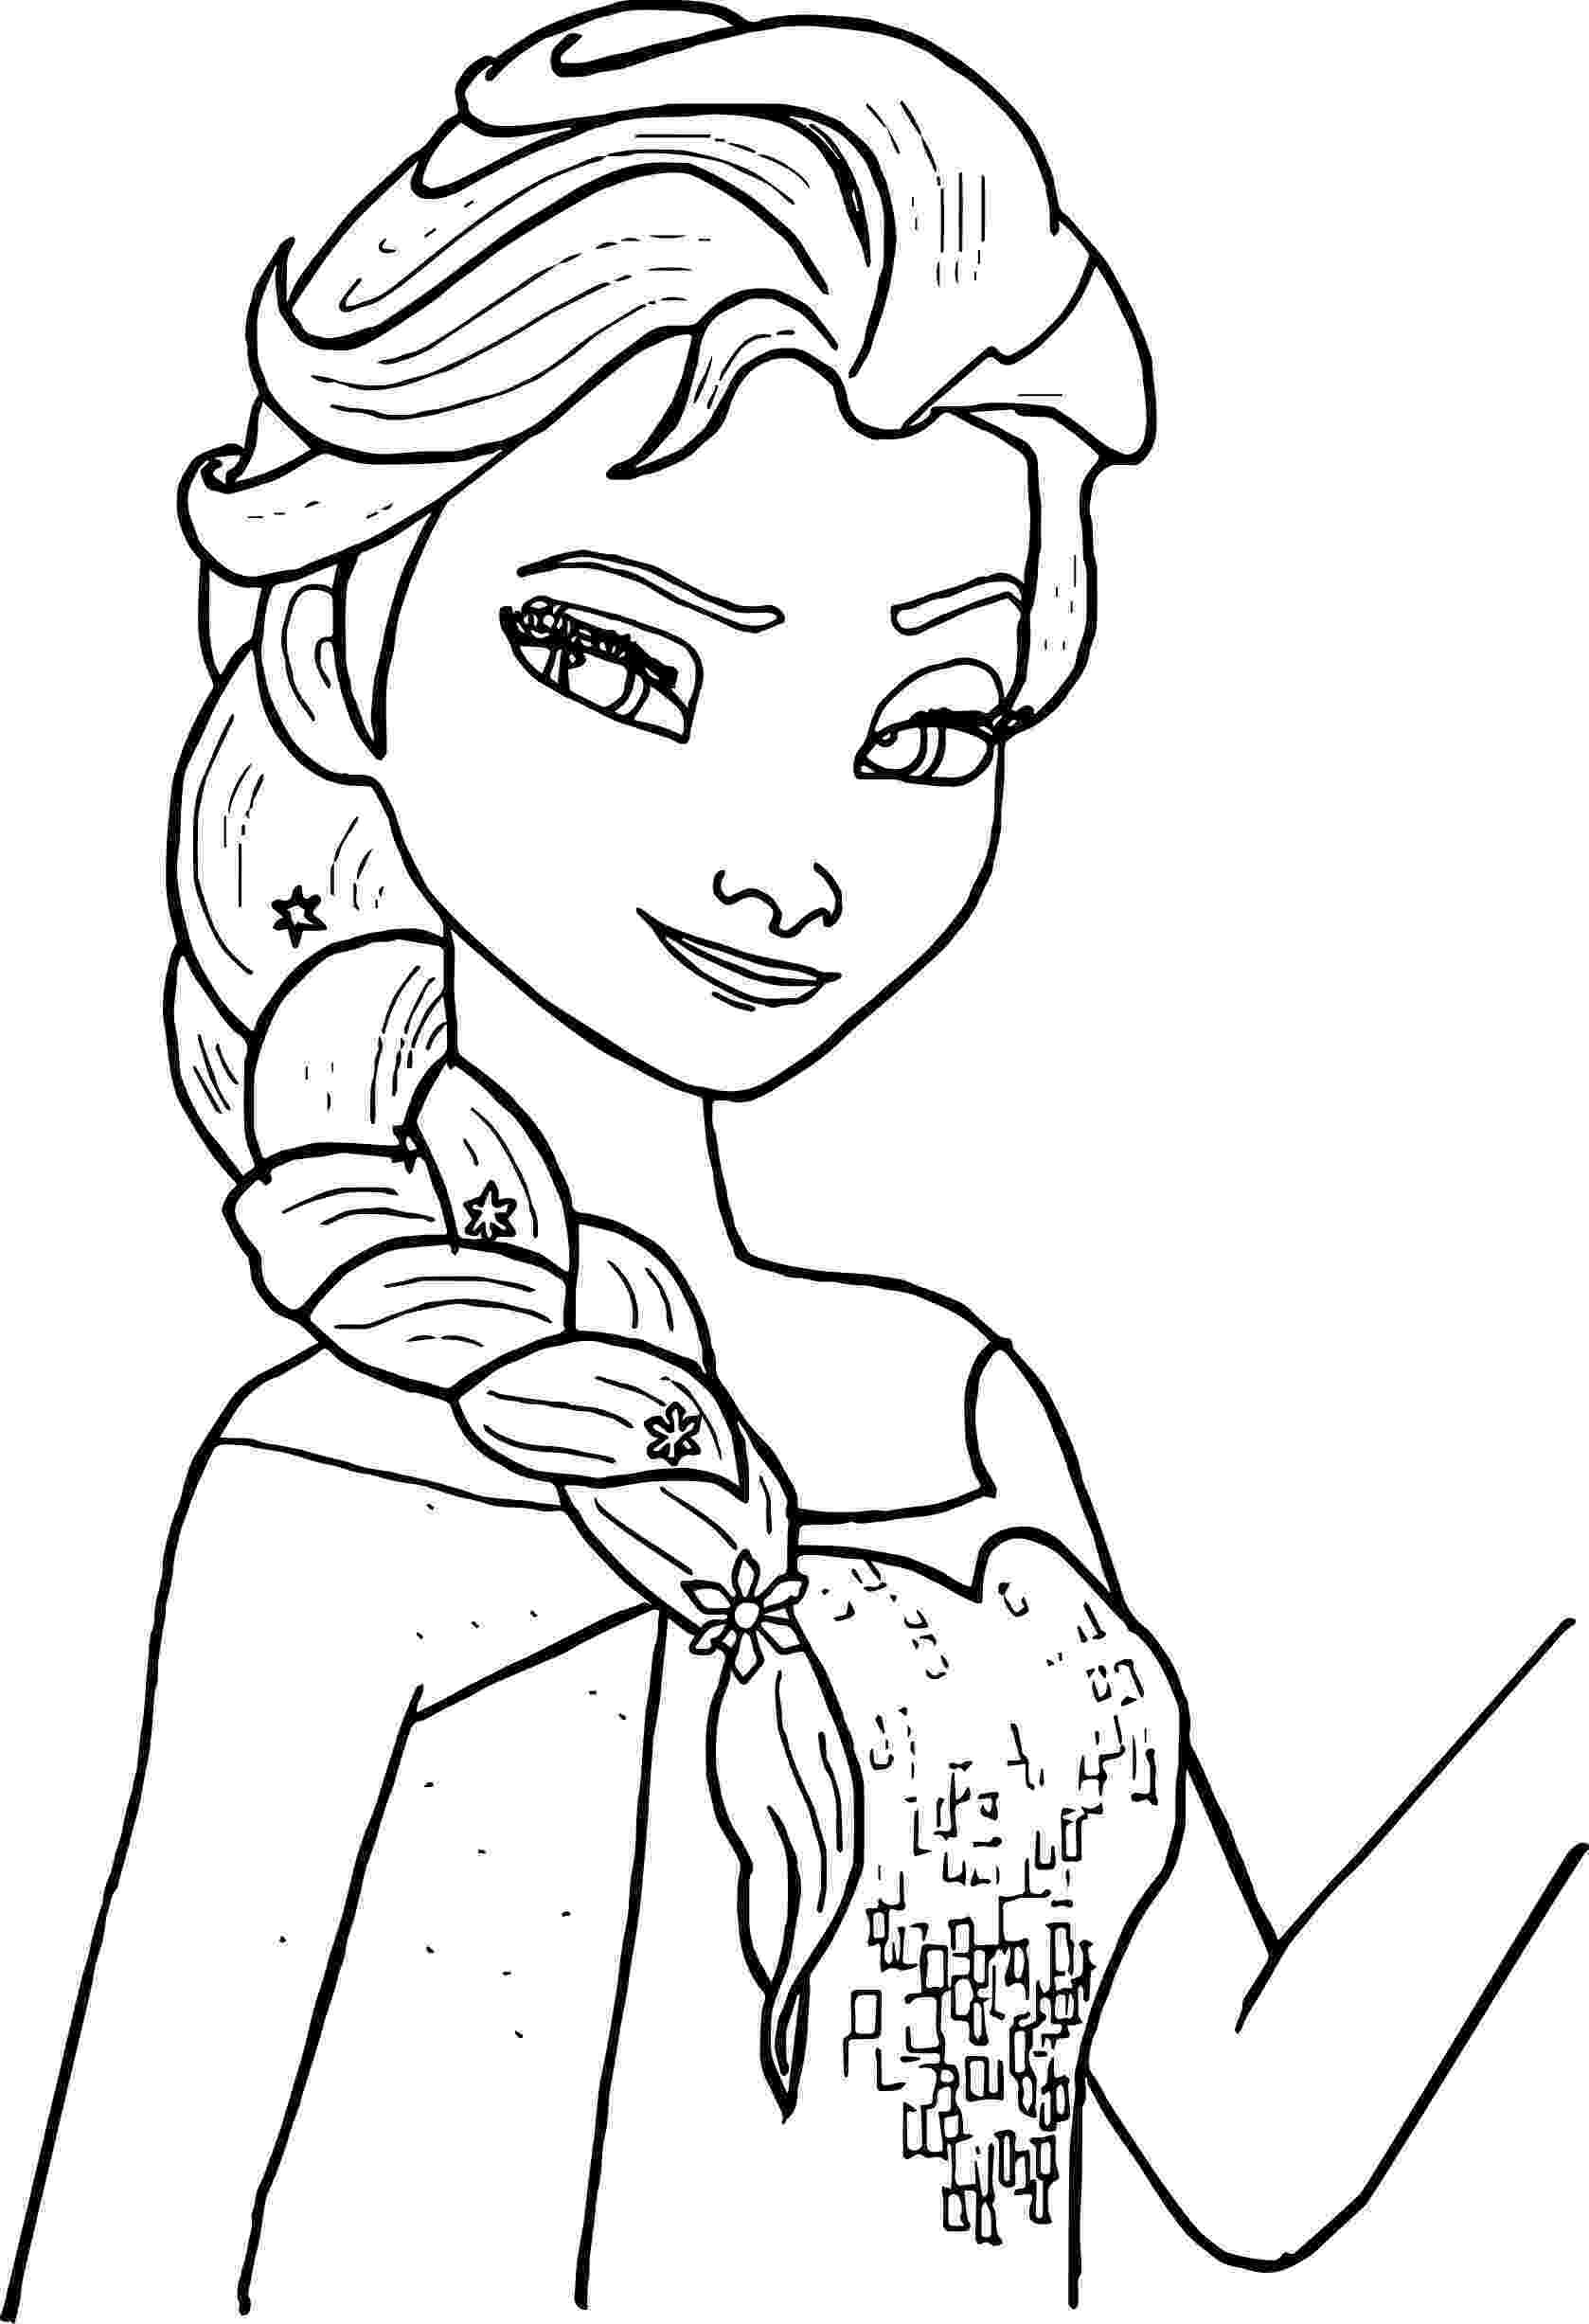 free printable coloring pages of elsa from frozen free frozen printable coloring activity pages plus free free pages of elsa frozen coloring printable from